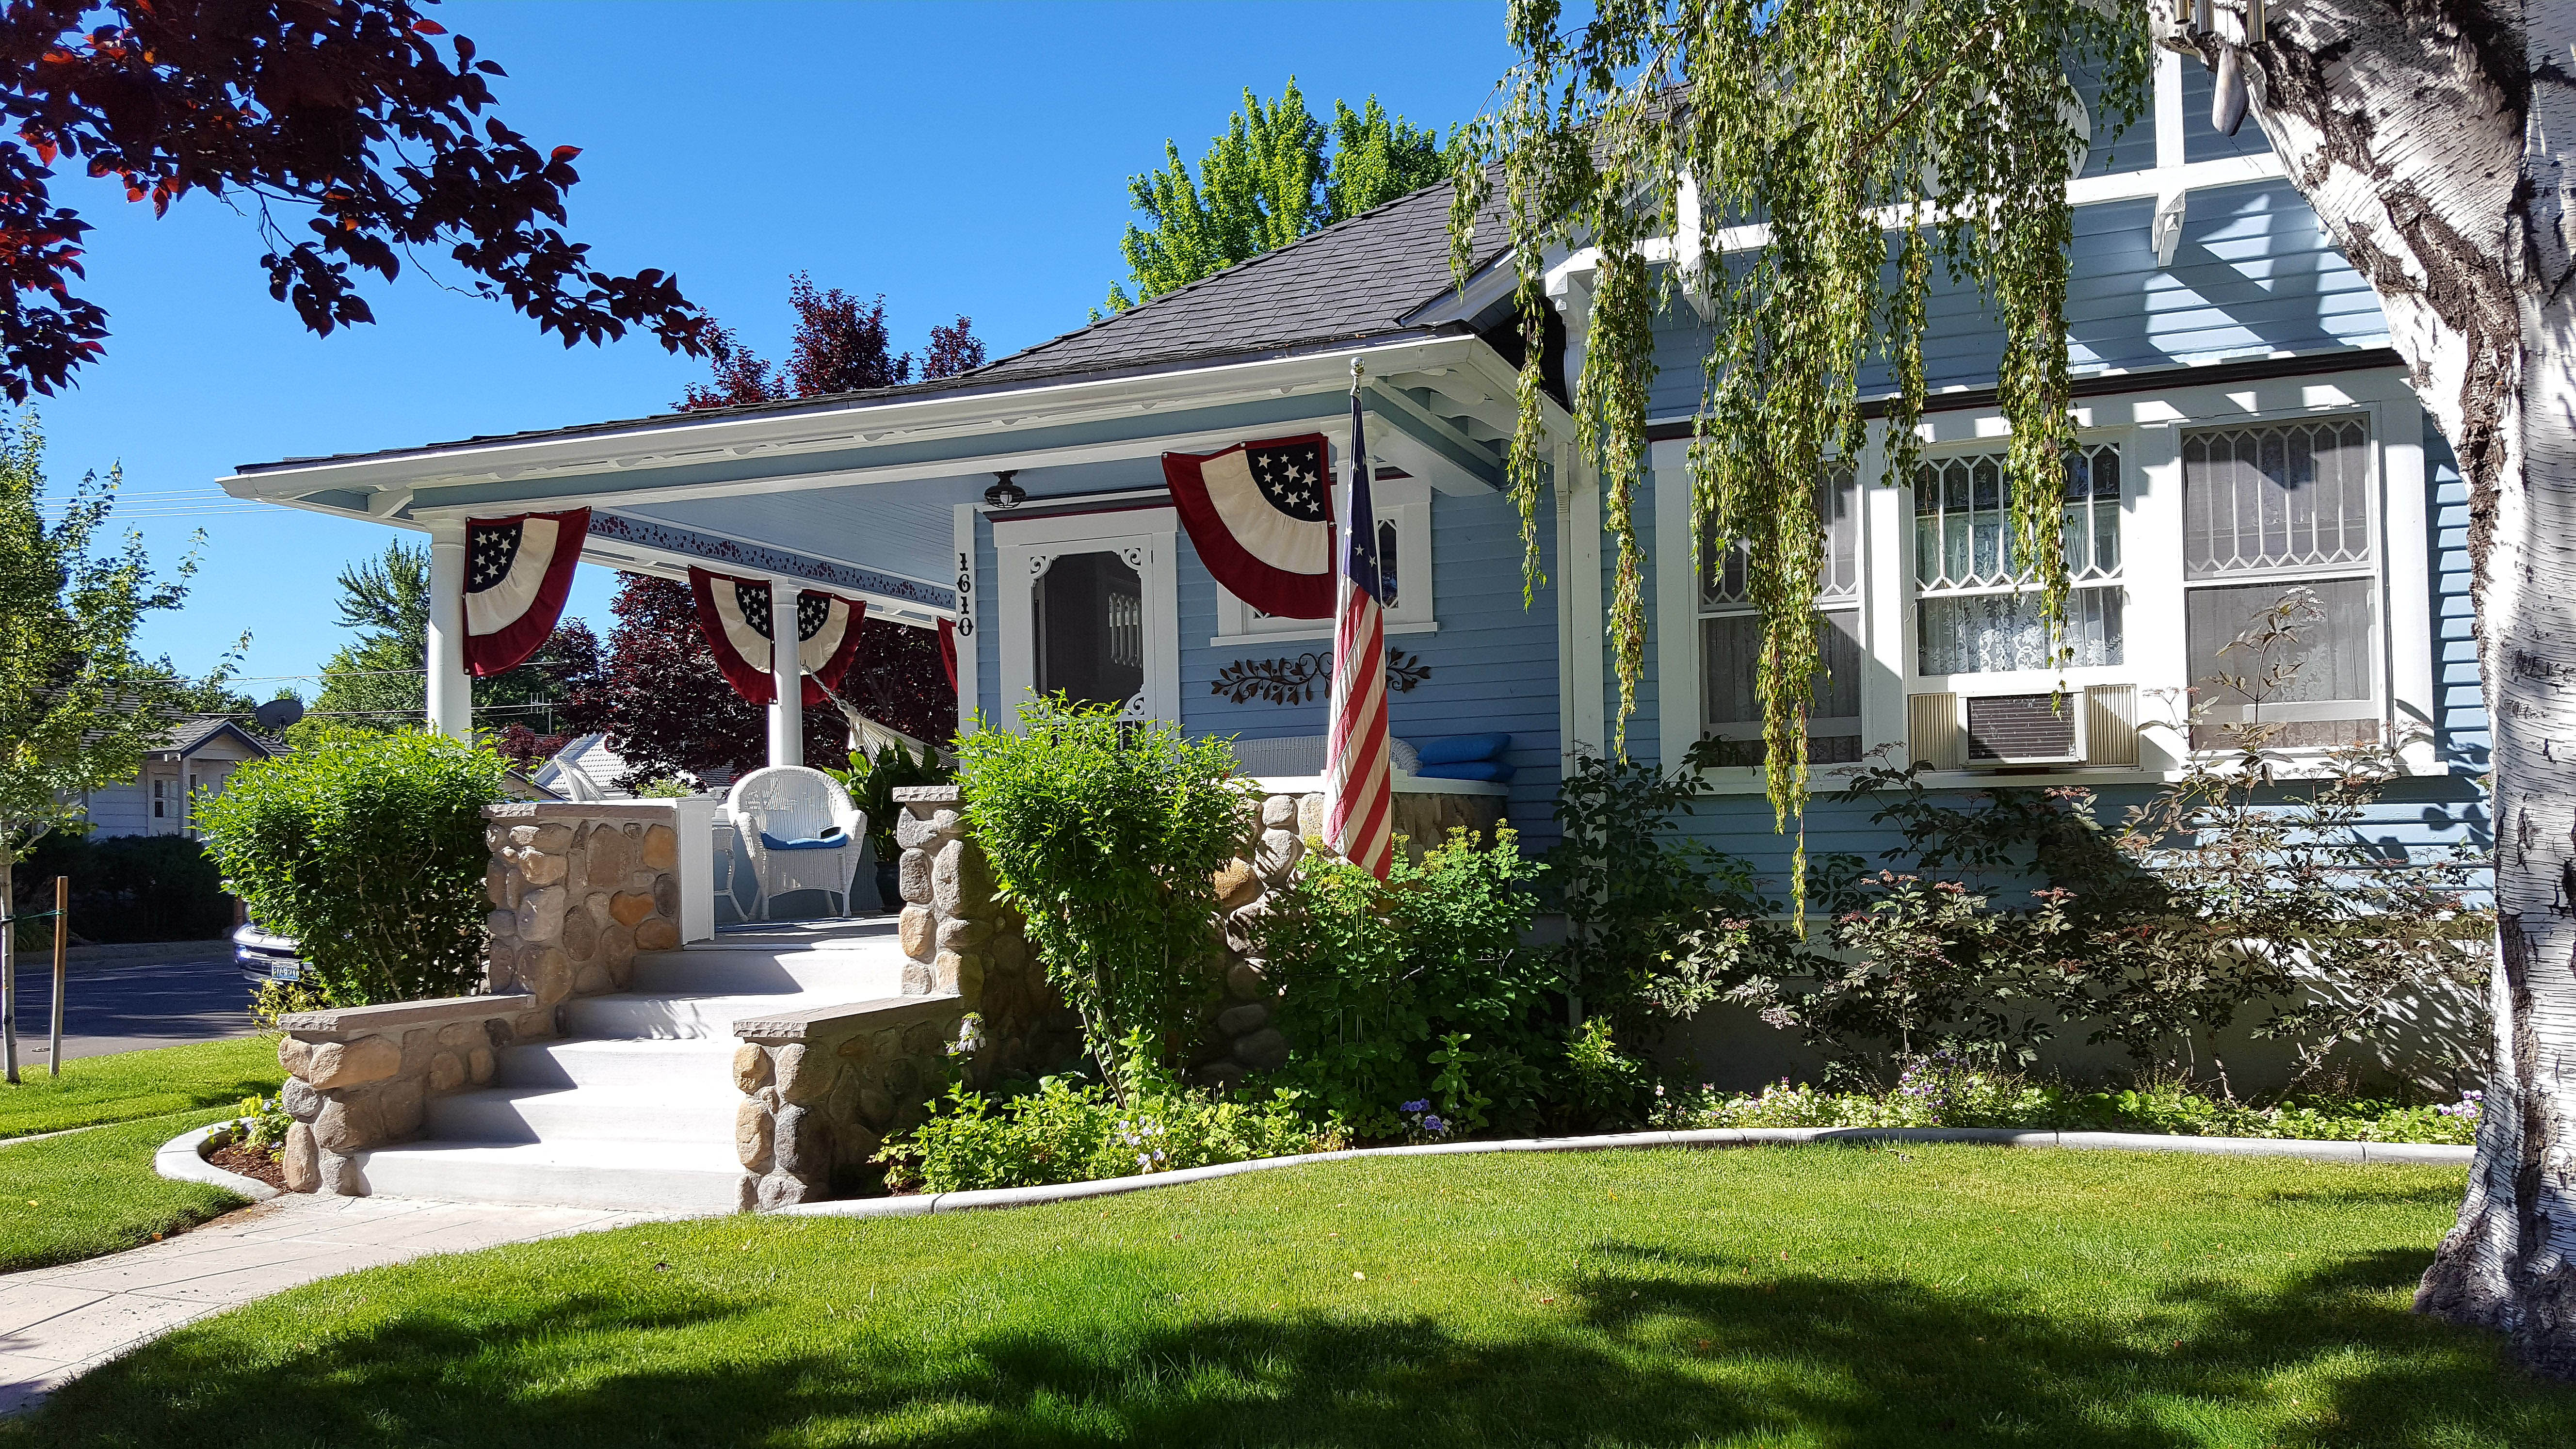 home with 4th of July decorations